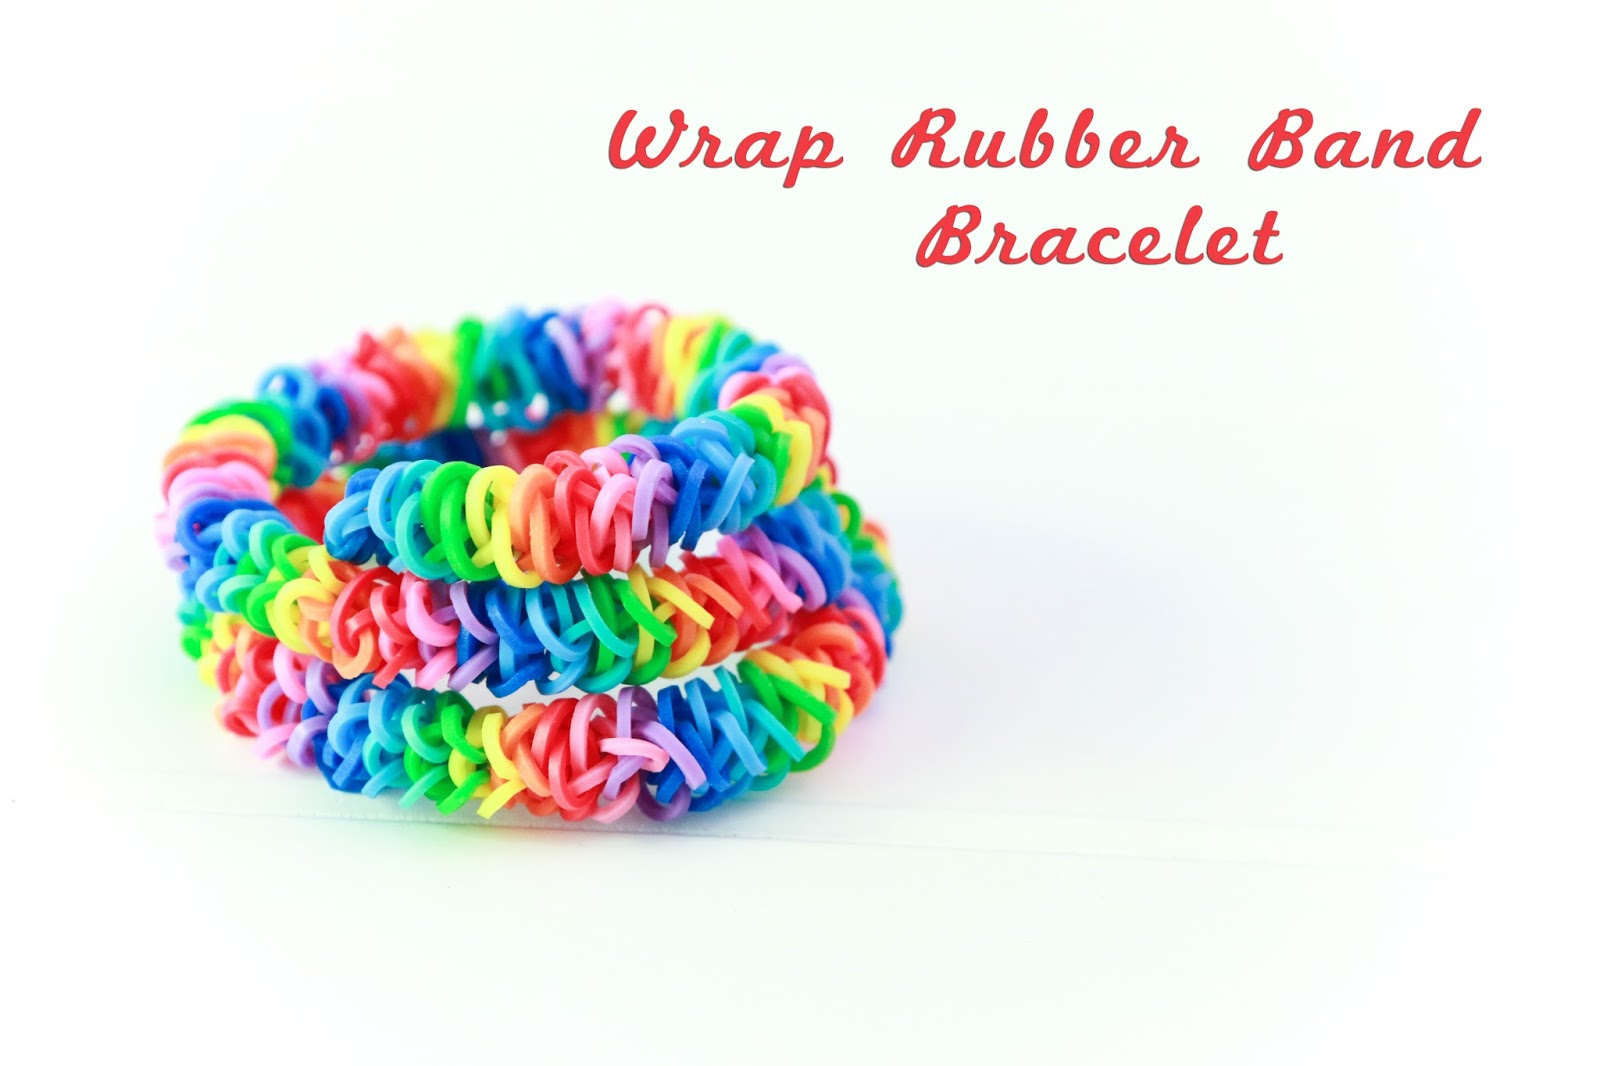 Wrap Rubber Band Bracelet @craftsavvy #craftwarehouse #rubberbandbracelets #loom #loombands #diy